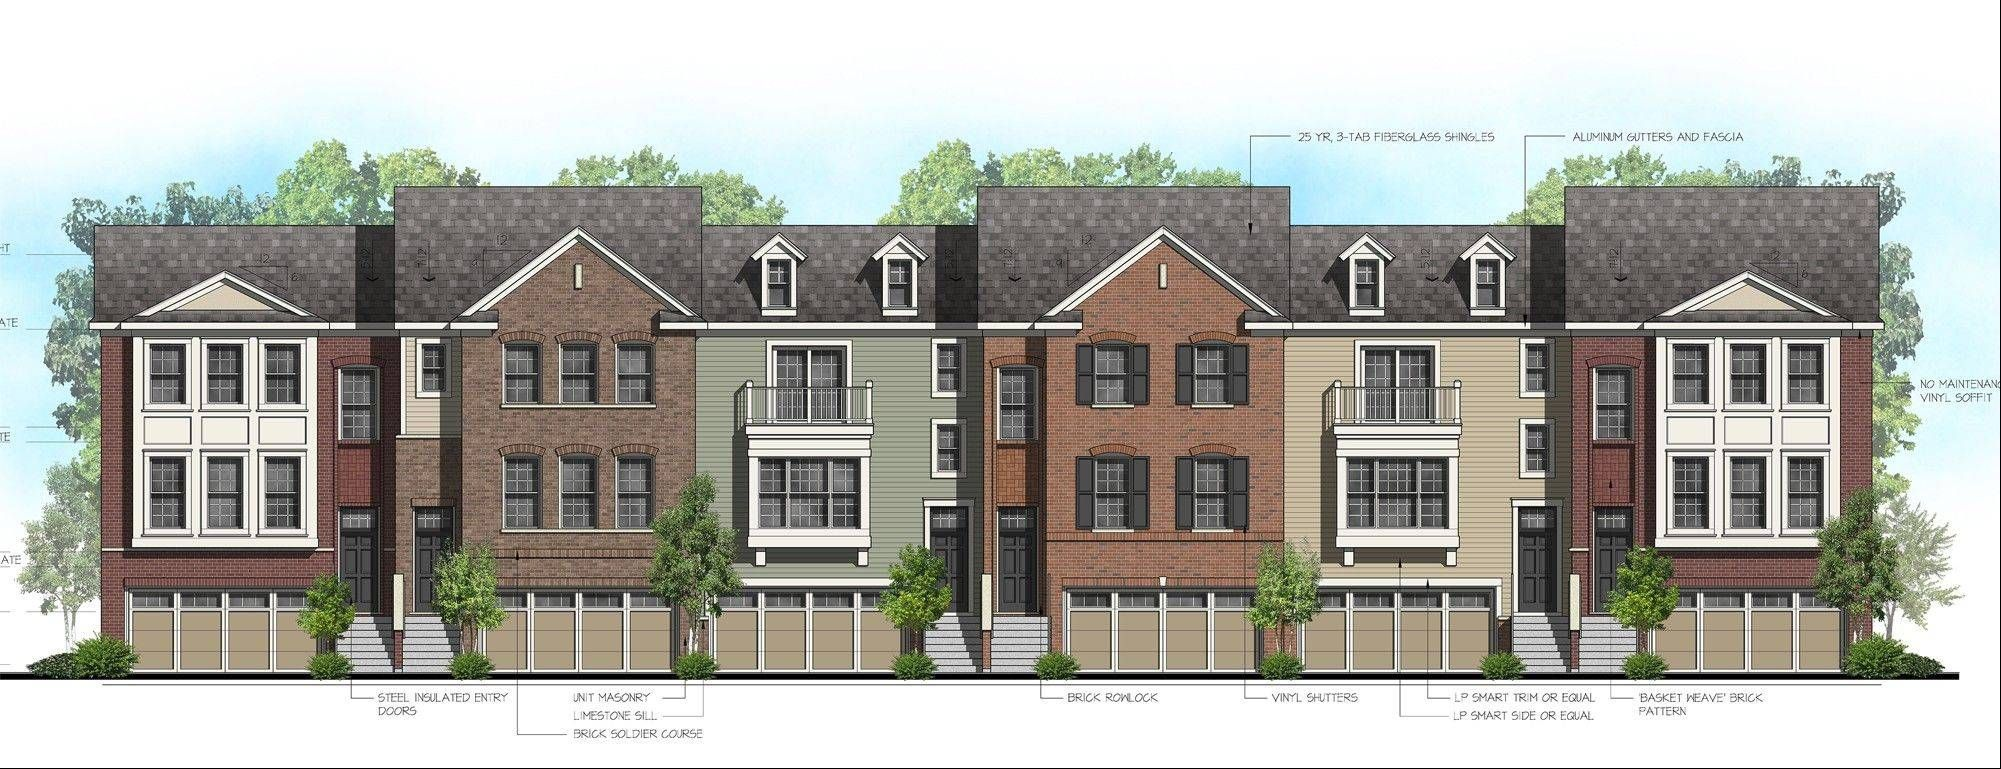 An architectural rendering of one of the row house buildings proposed for the 12 acre pleasant square residential development in schaumburg